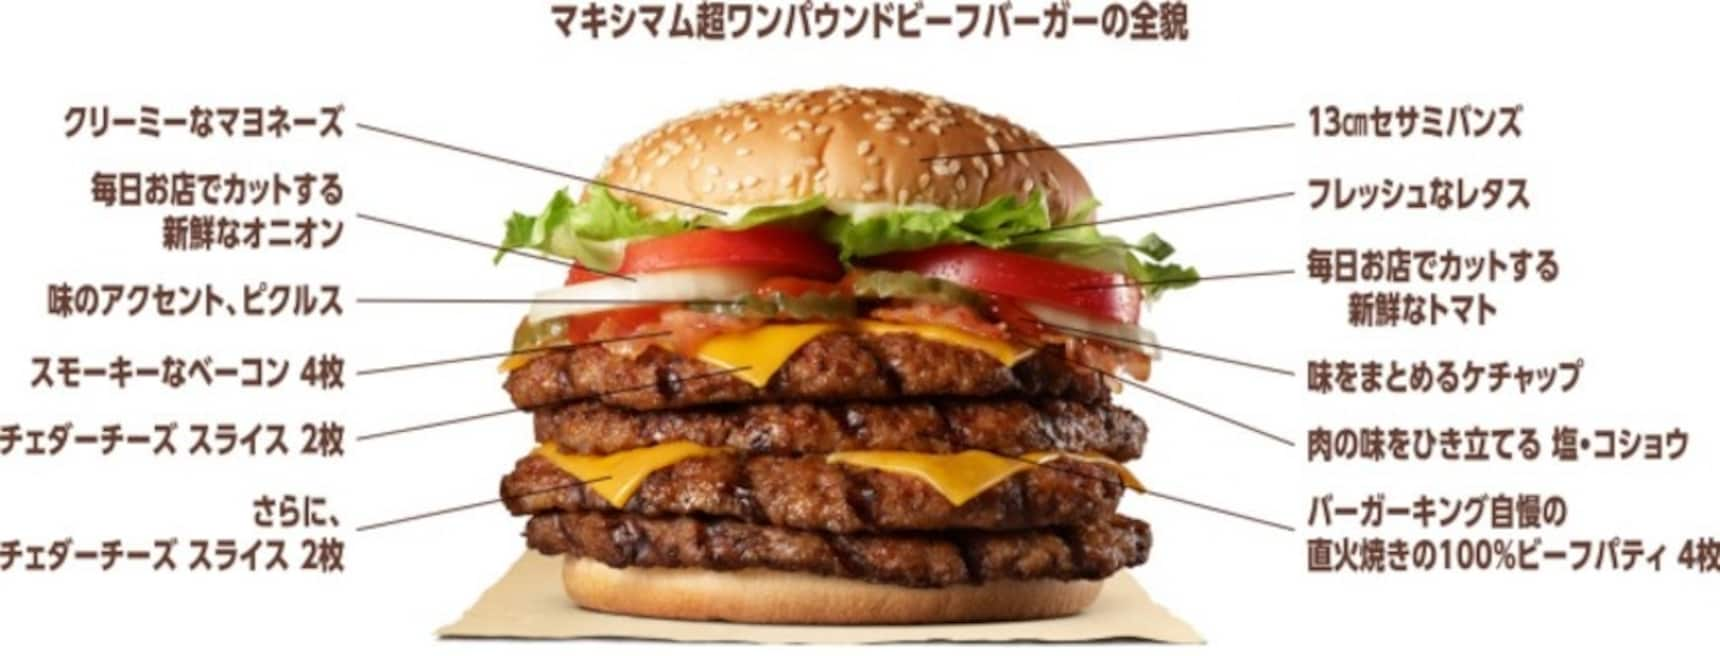 Ready for Burger King's Maximum Challenge?